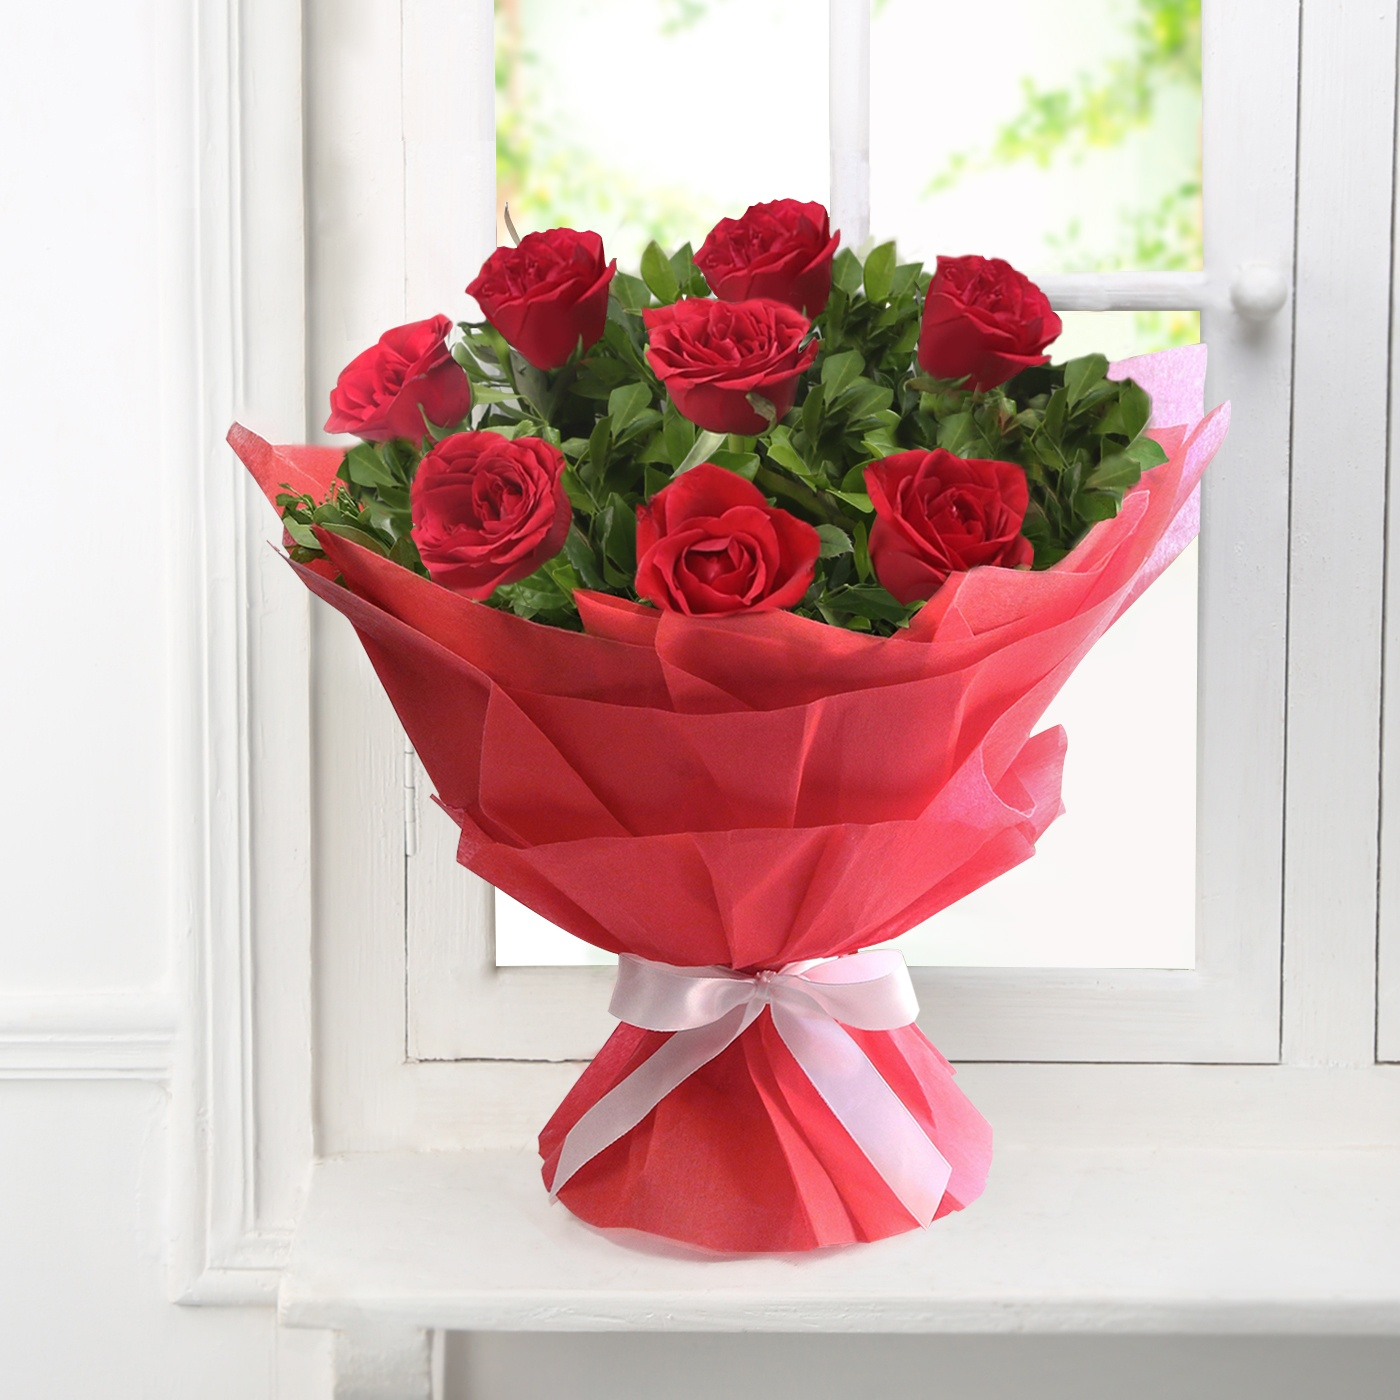 Which is best online site to send flowers quora buy flowers for your dear ones whom you admire and keep that bond as fresh as our handpicked fresh cut flowers izmirmasajfo